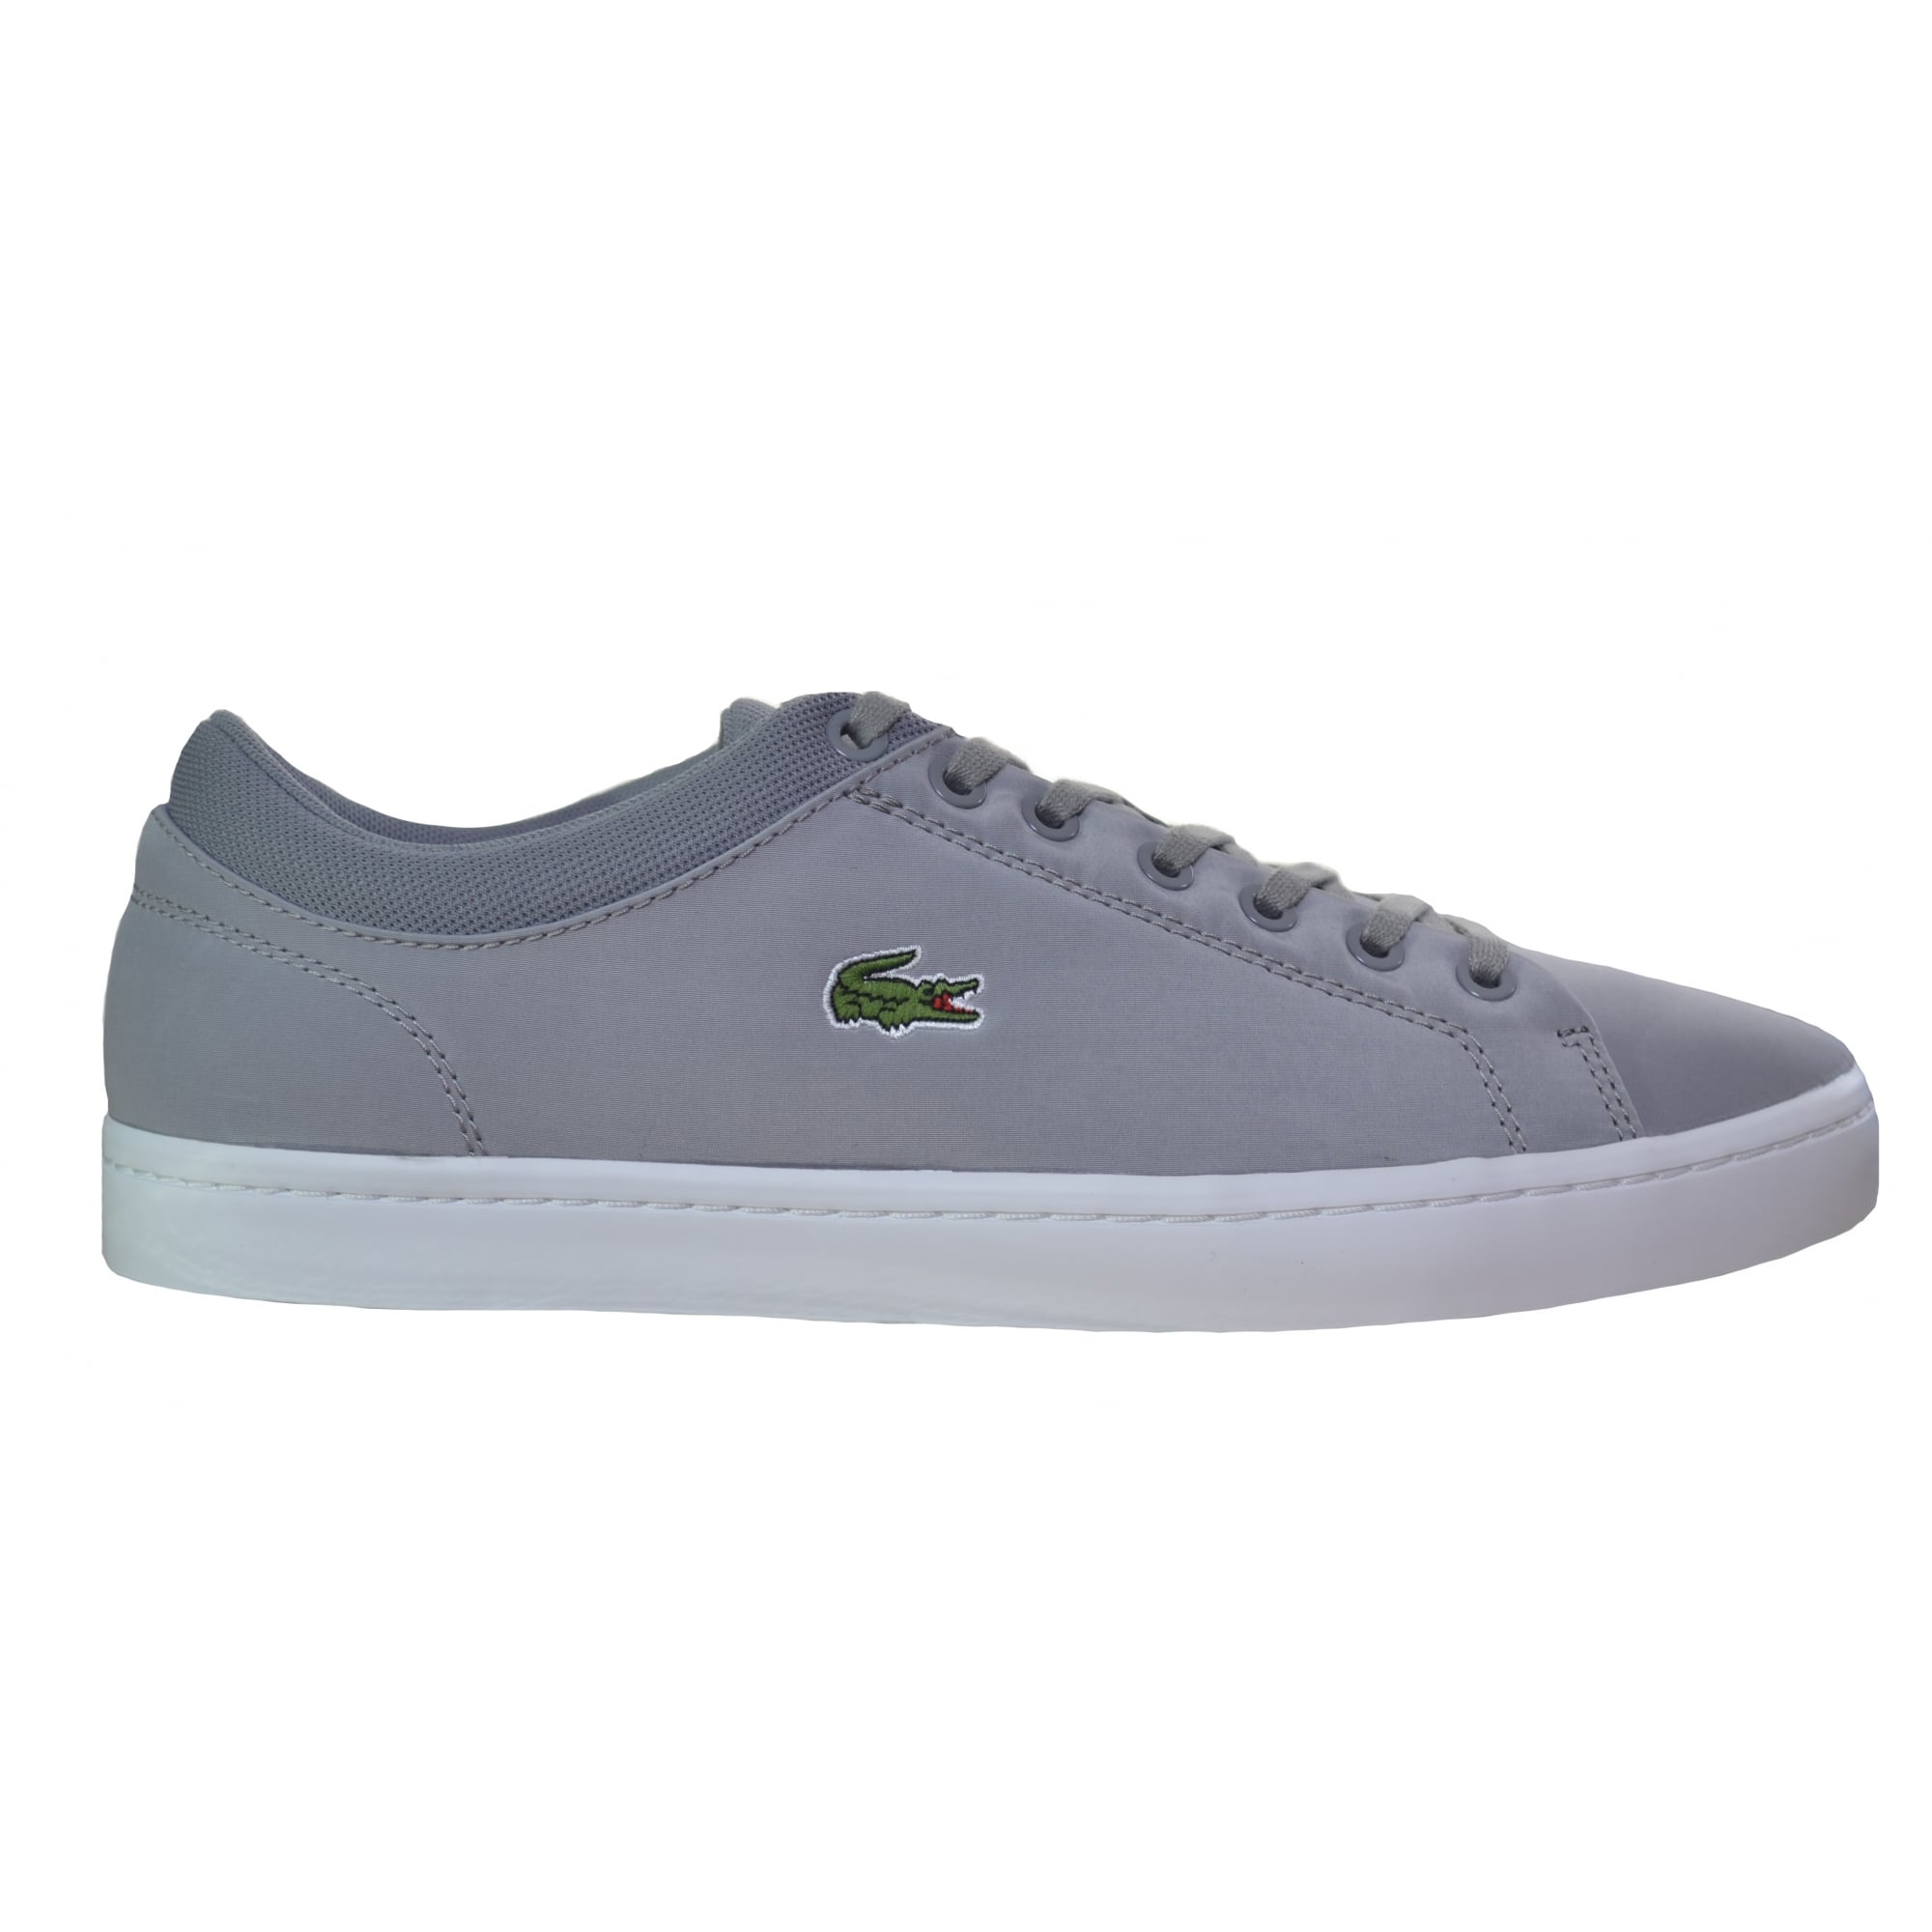 lacoste men's grey straightset trainers